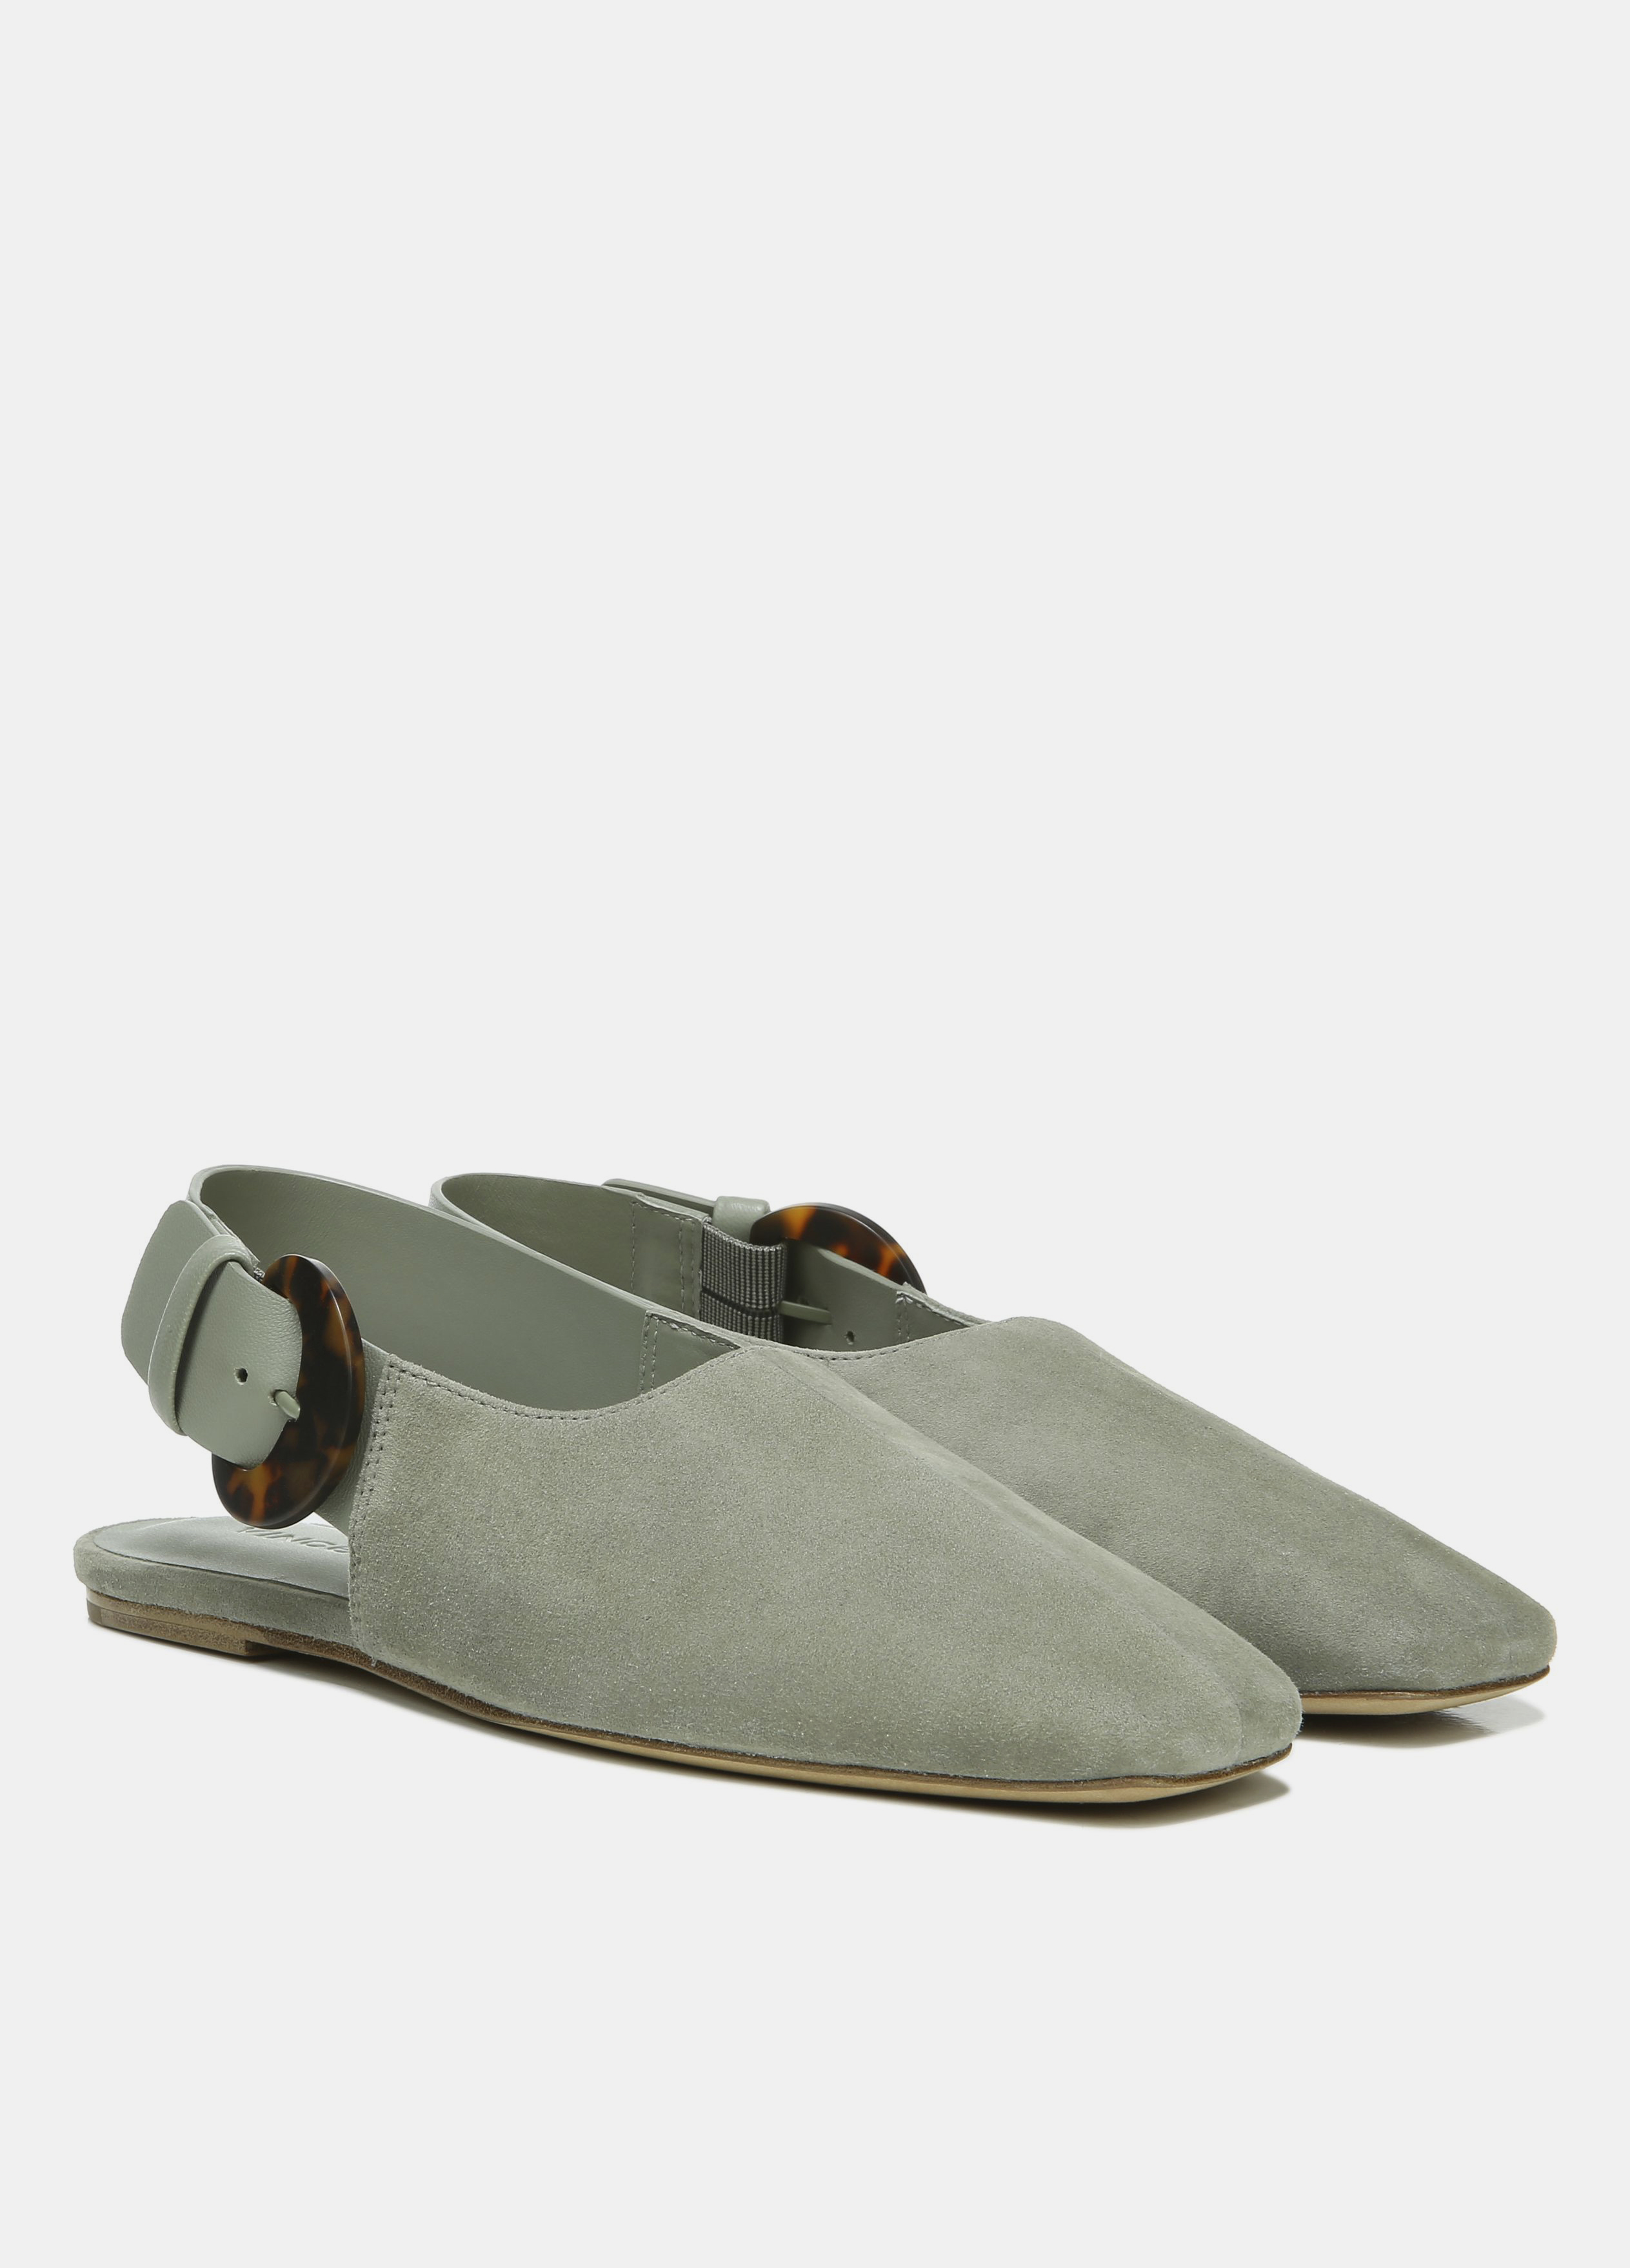 Cadot Suede Buckle Shoe